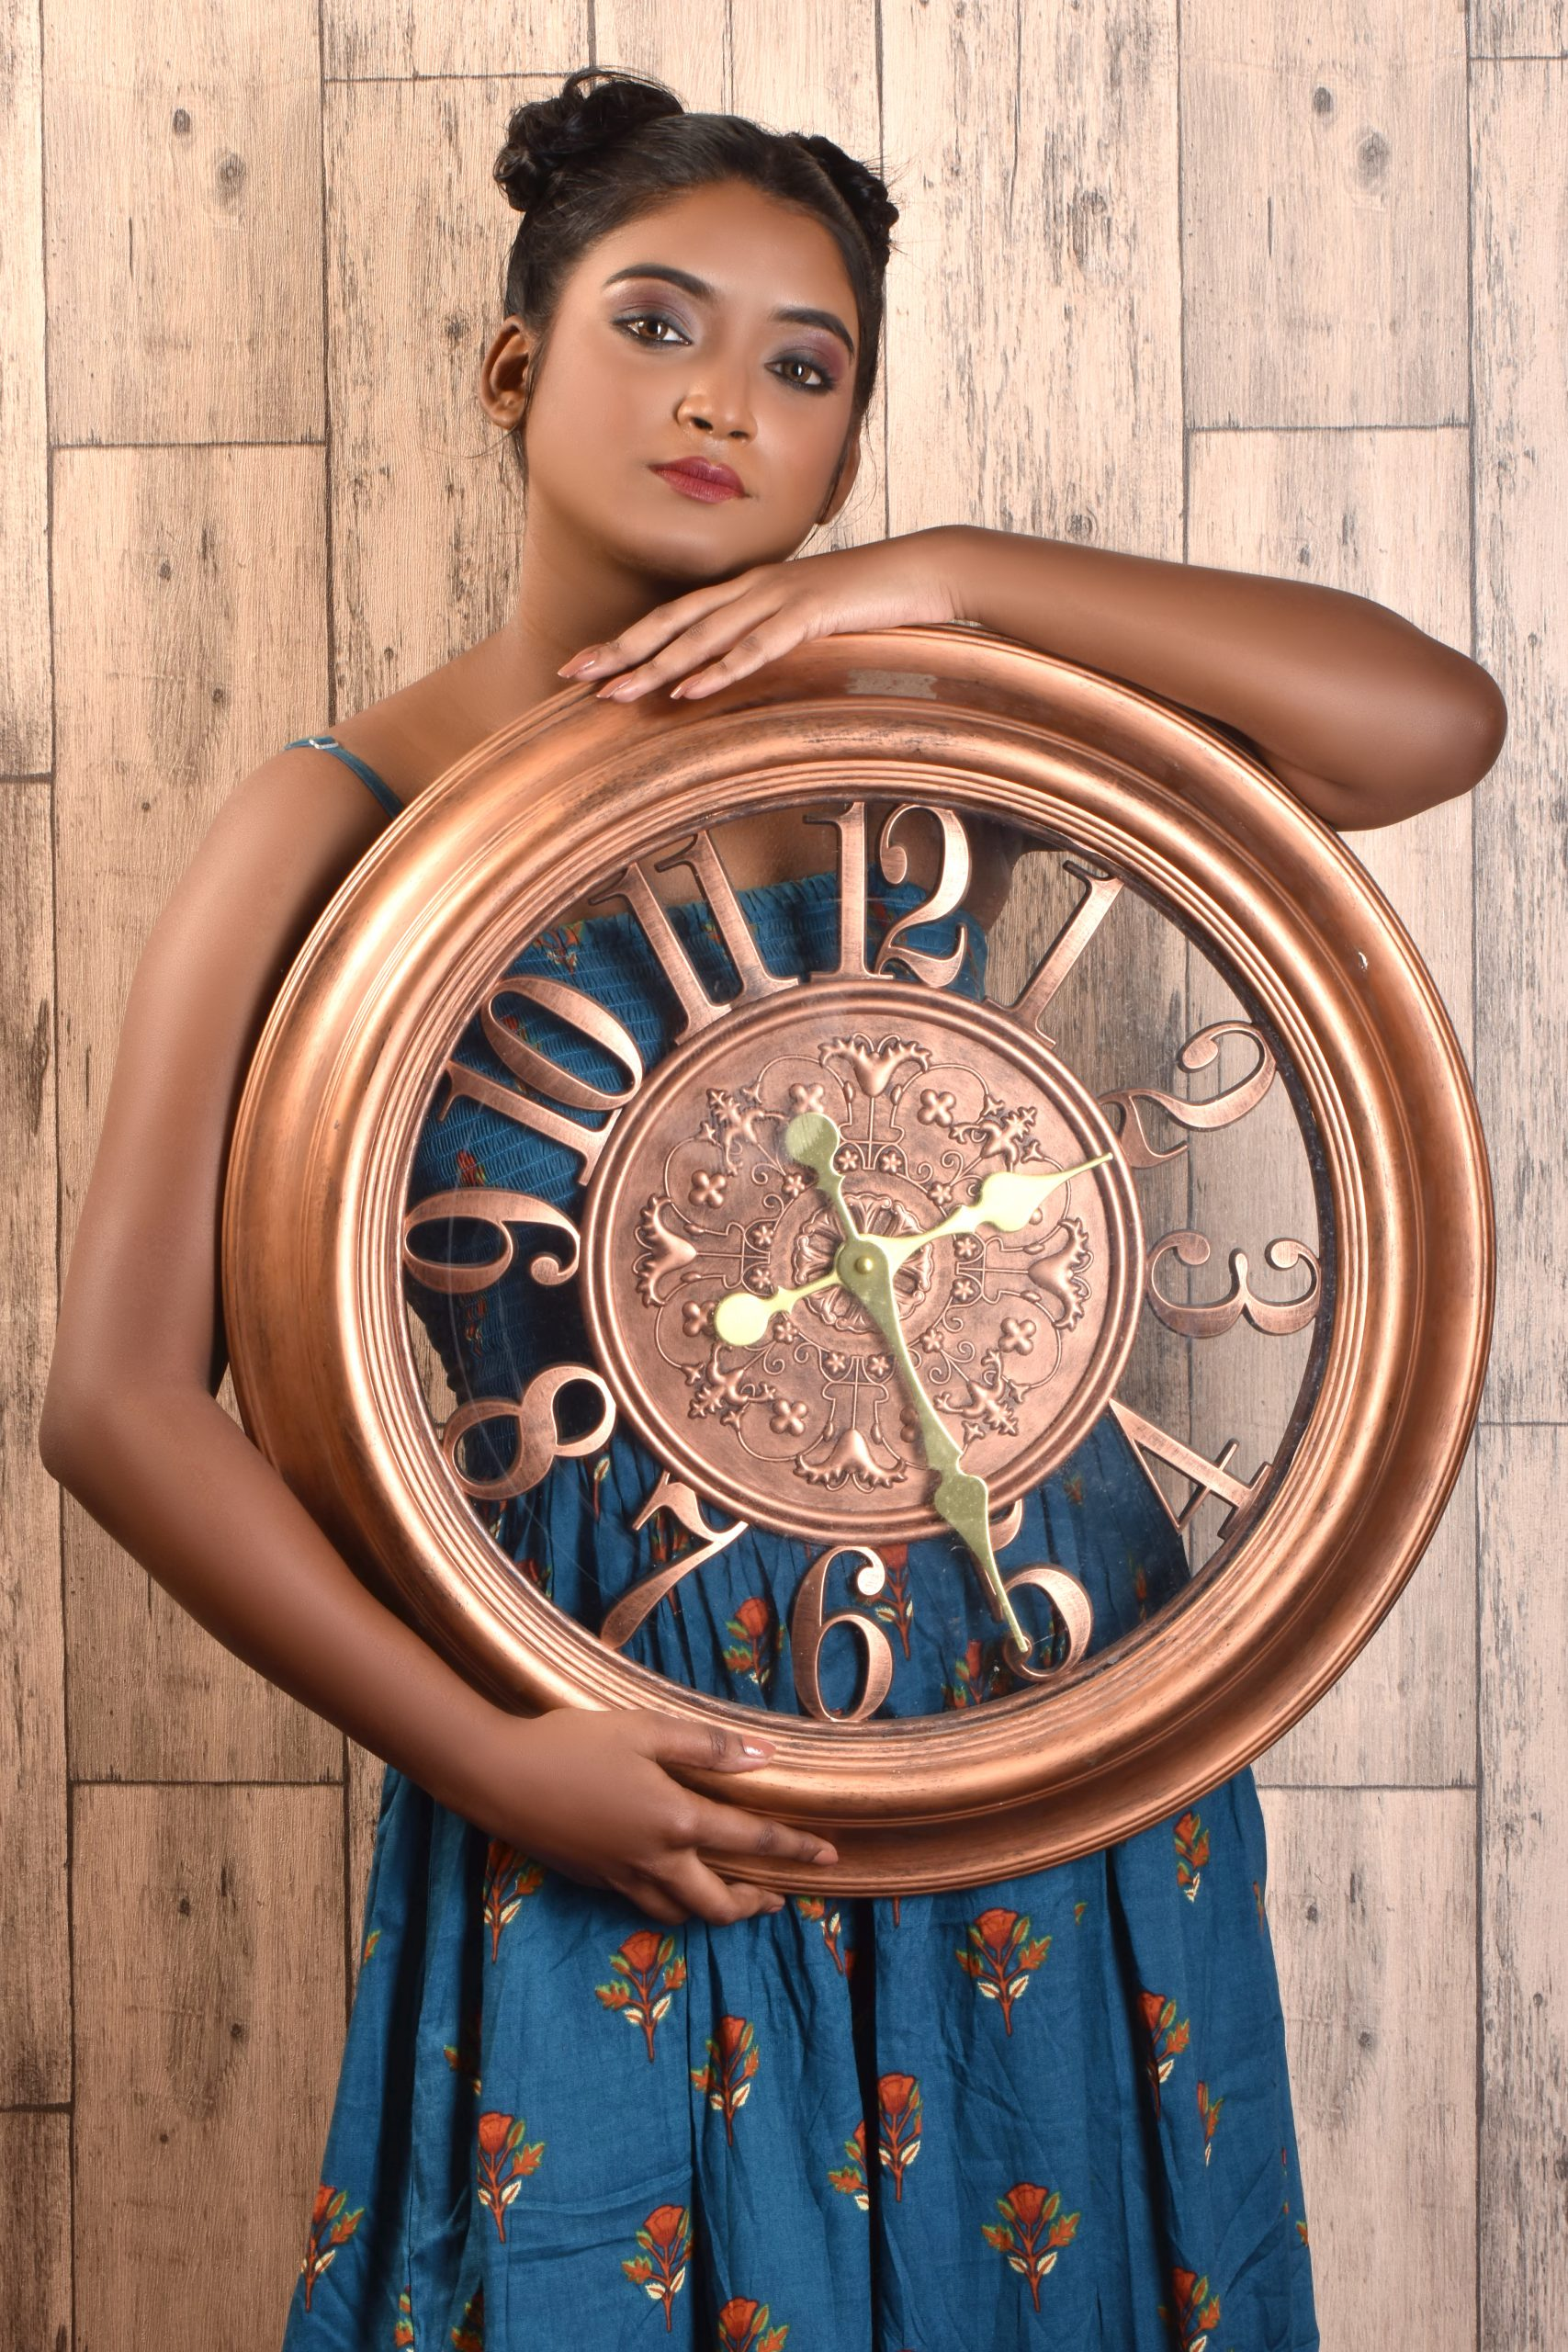 A girl holding a wall clock